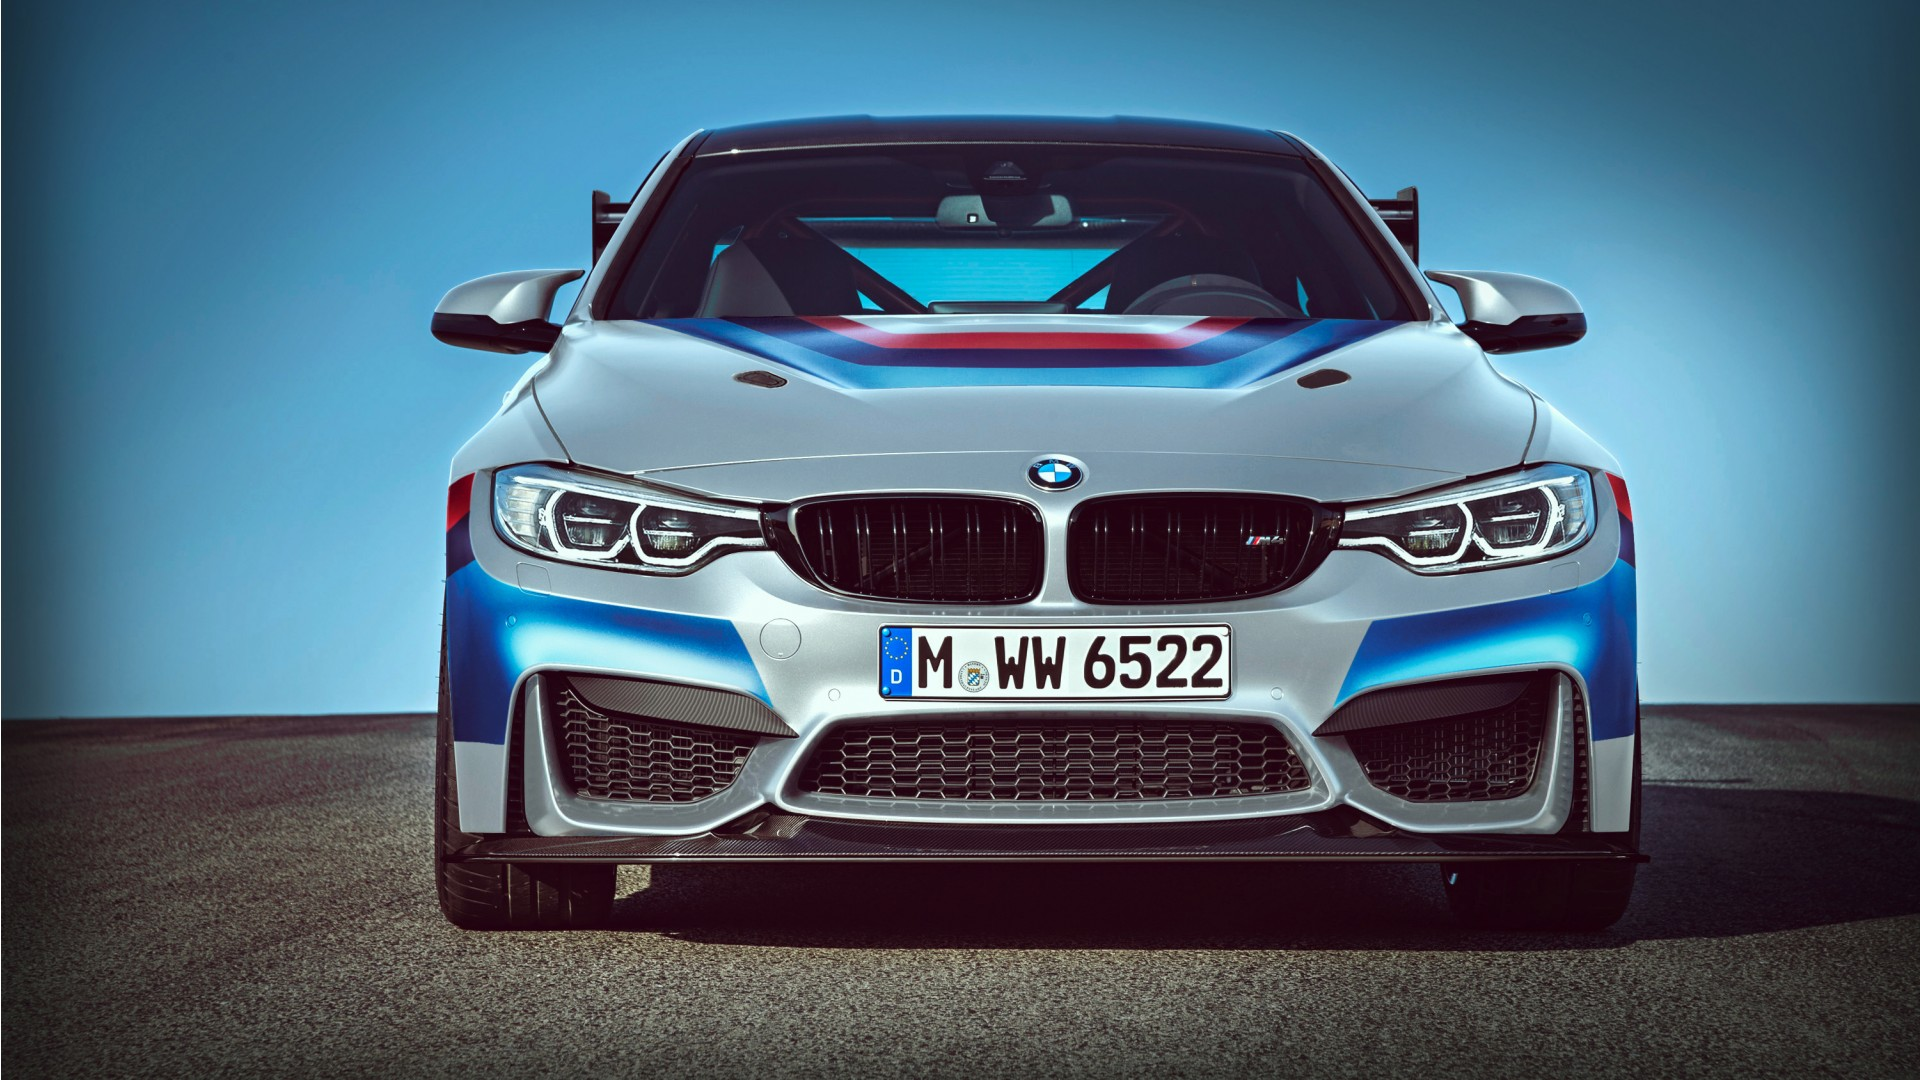 BMW M4 Coupe >> BMW M4 GTS 2017 Wallpaper | HD Car Wallpapers | ID #8107